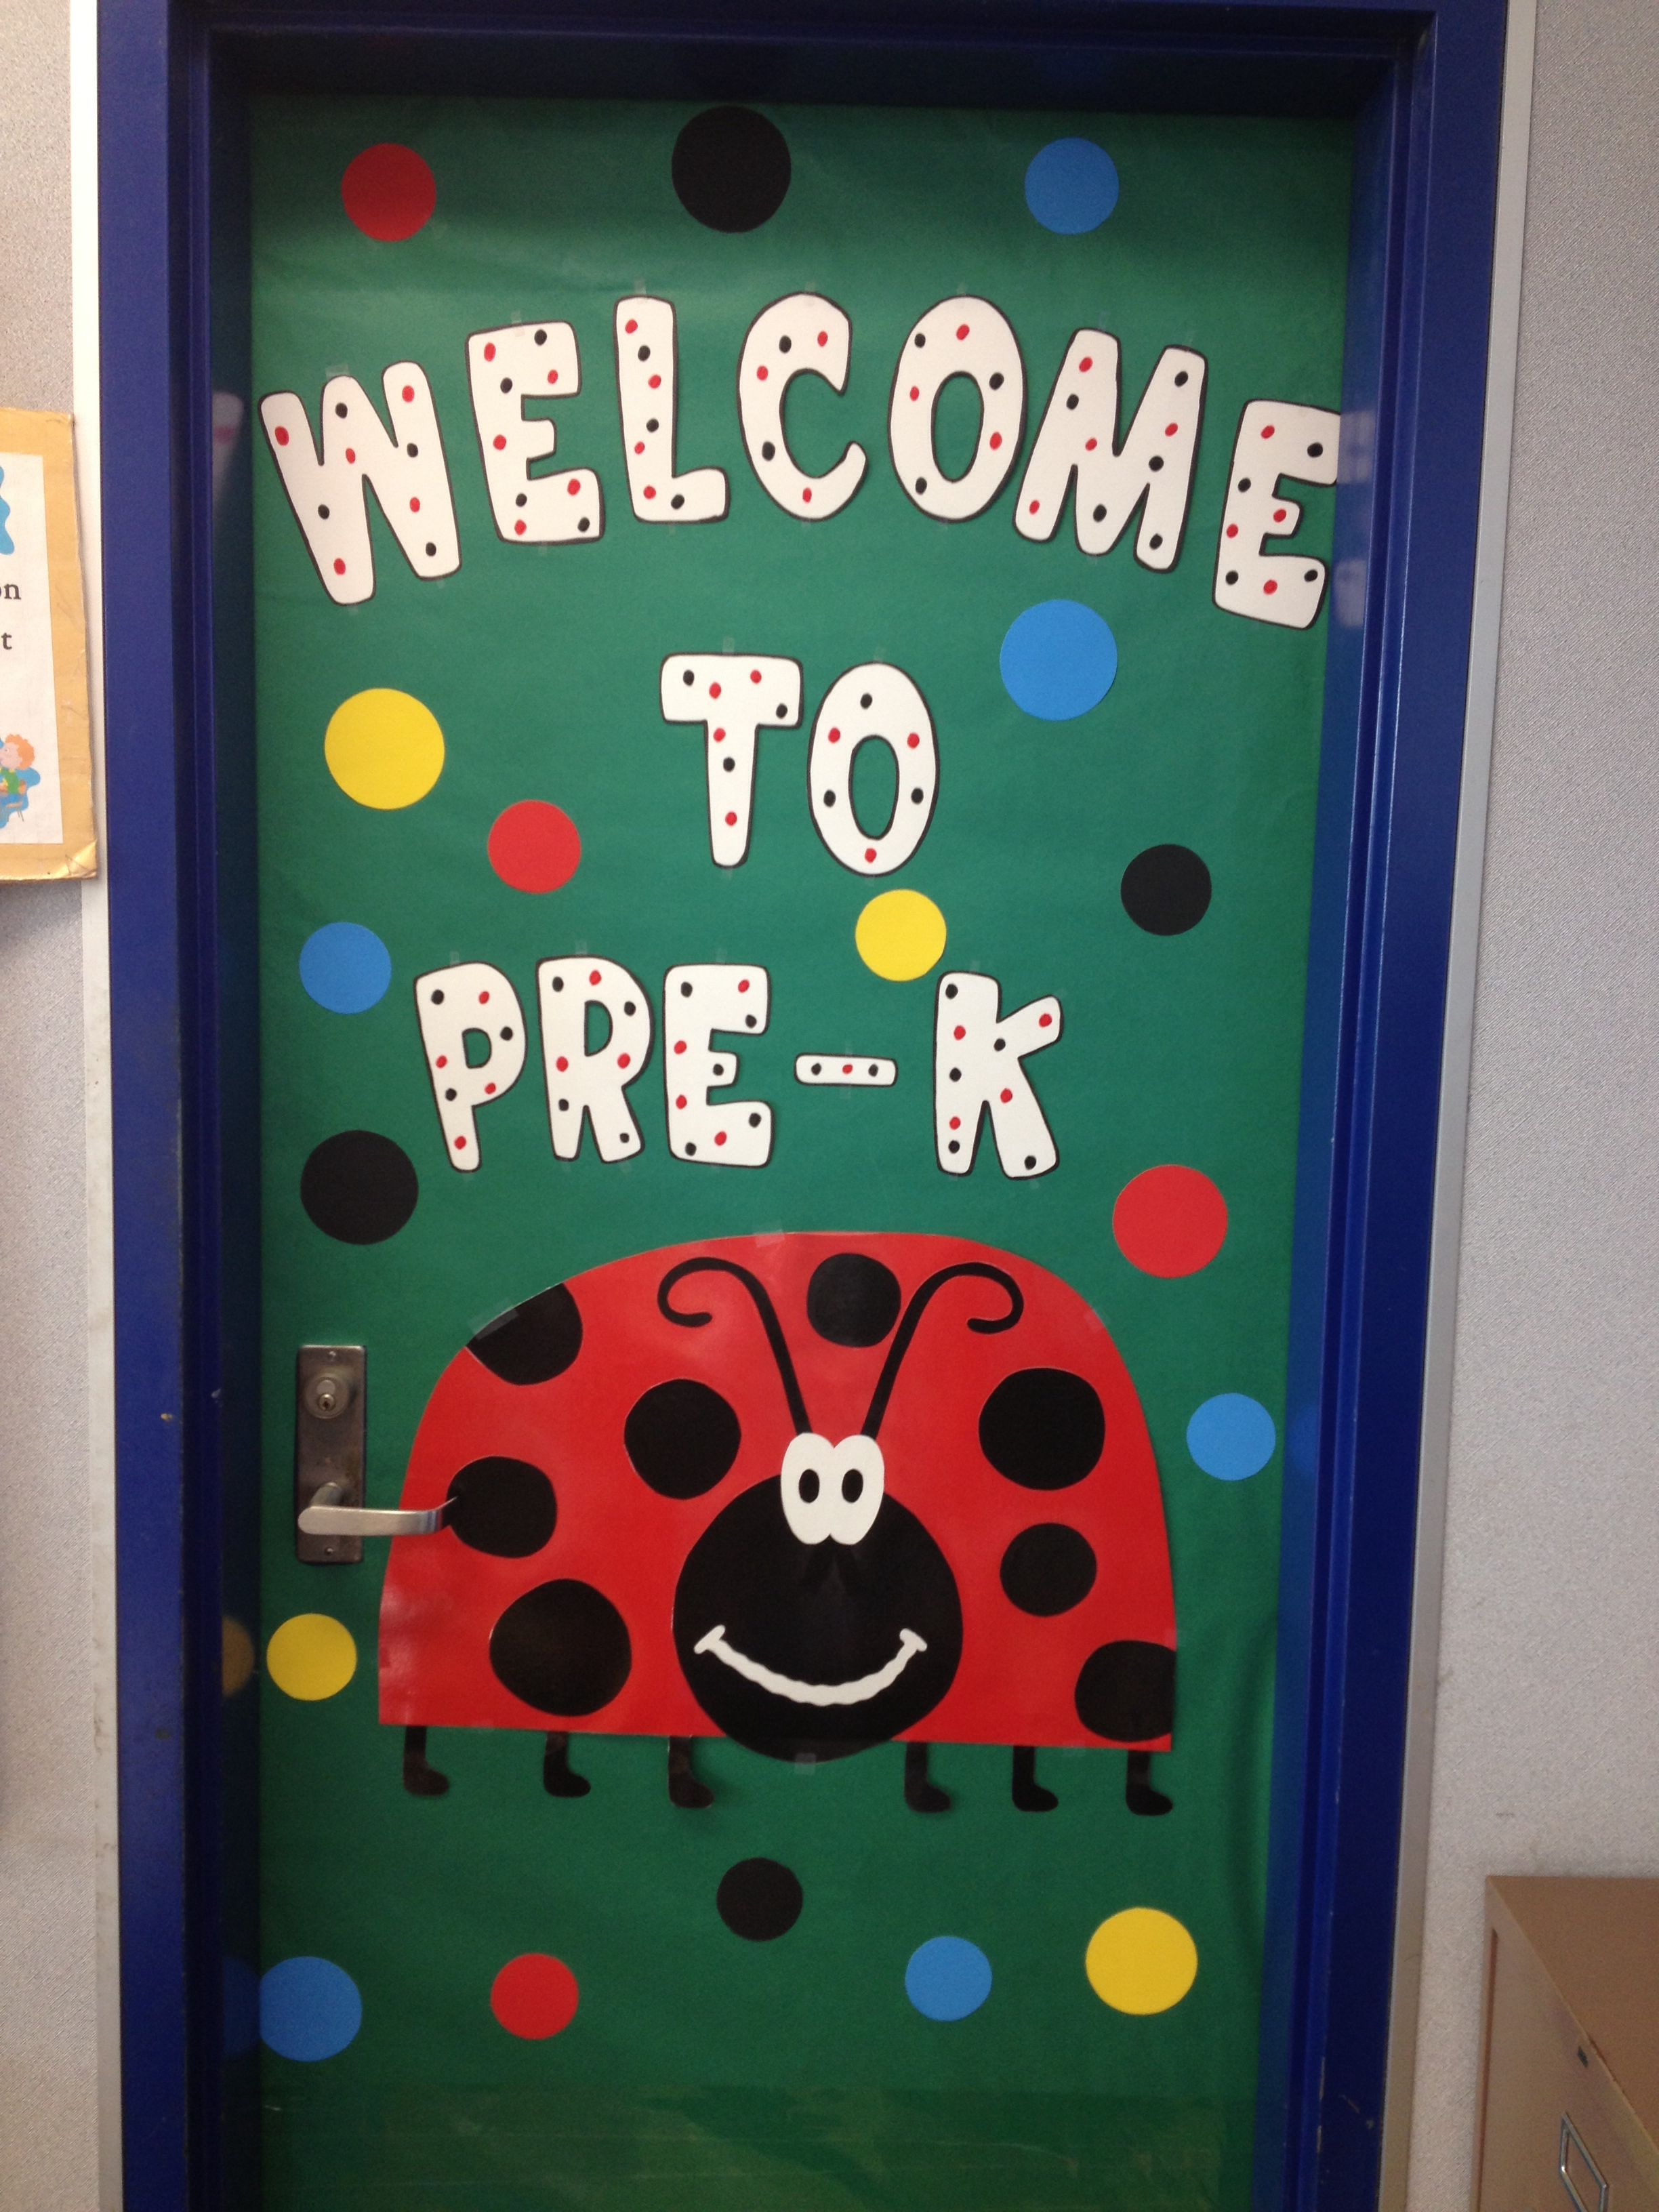 Welcome door decoration | Classroom ideas | Pinterest ...